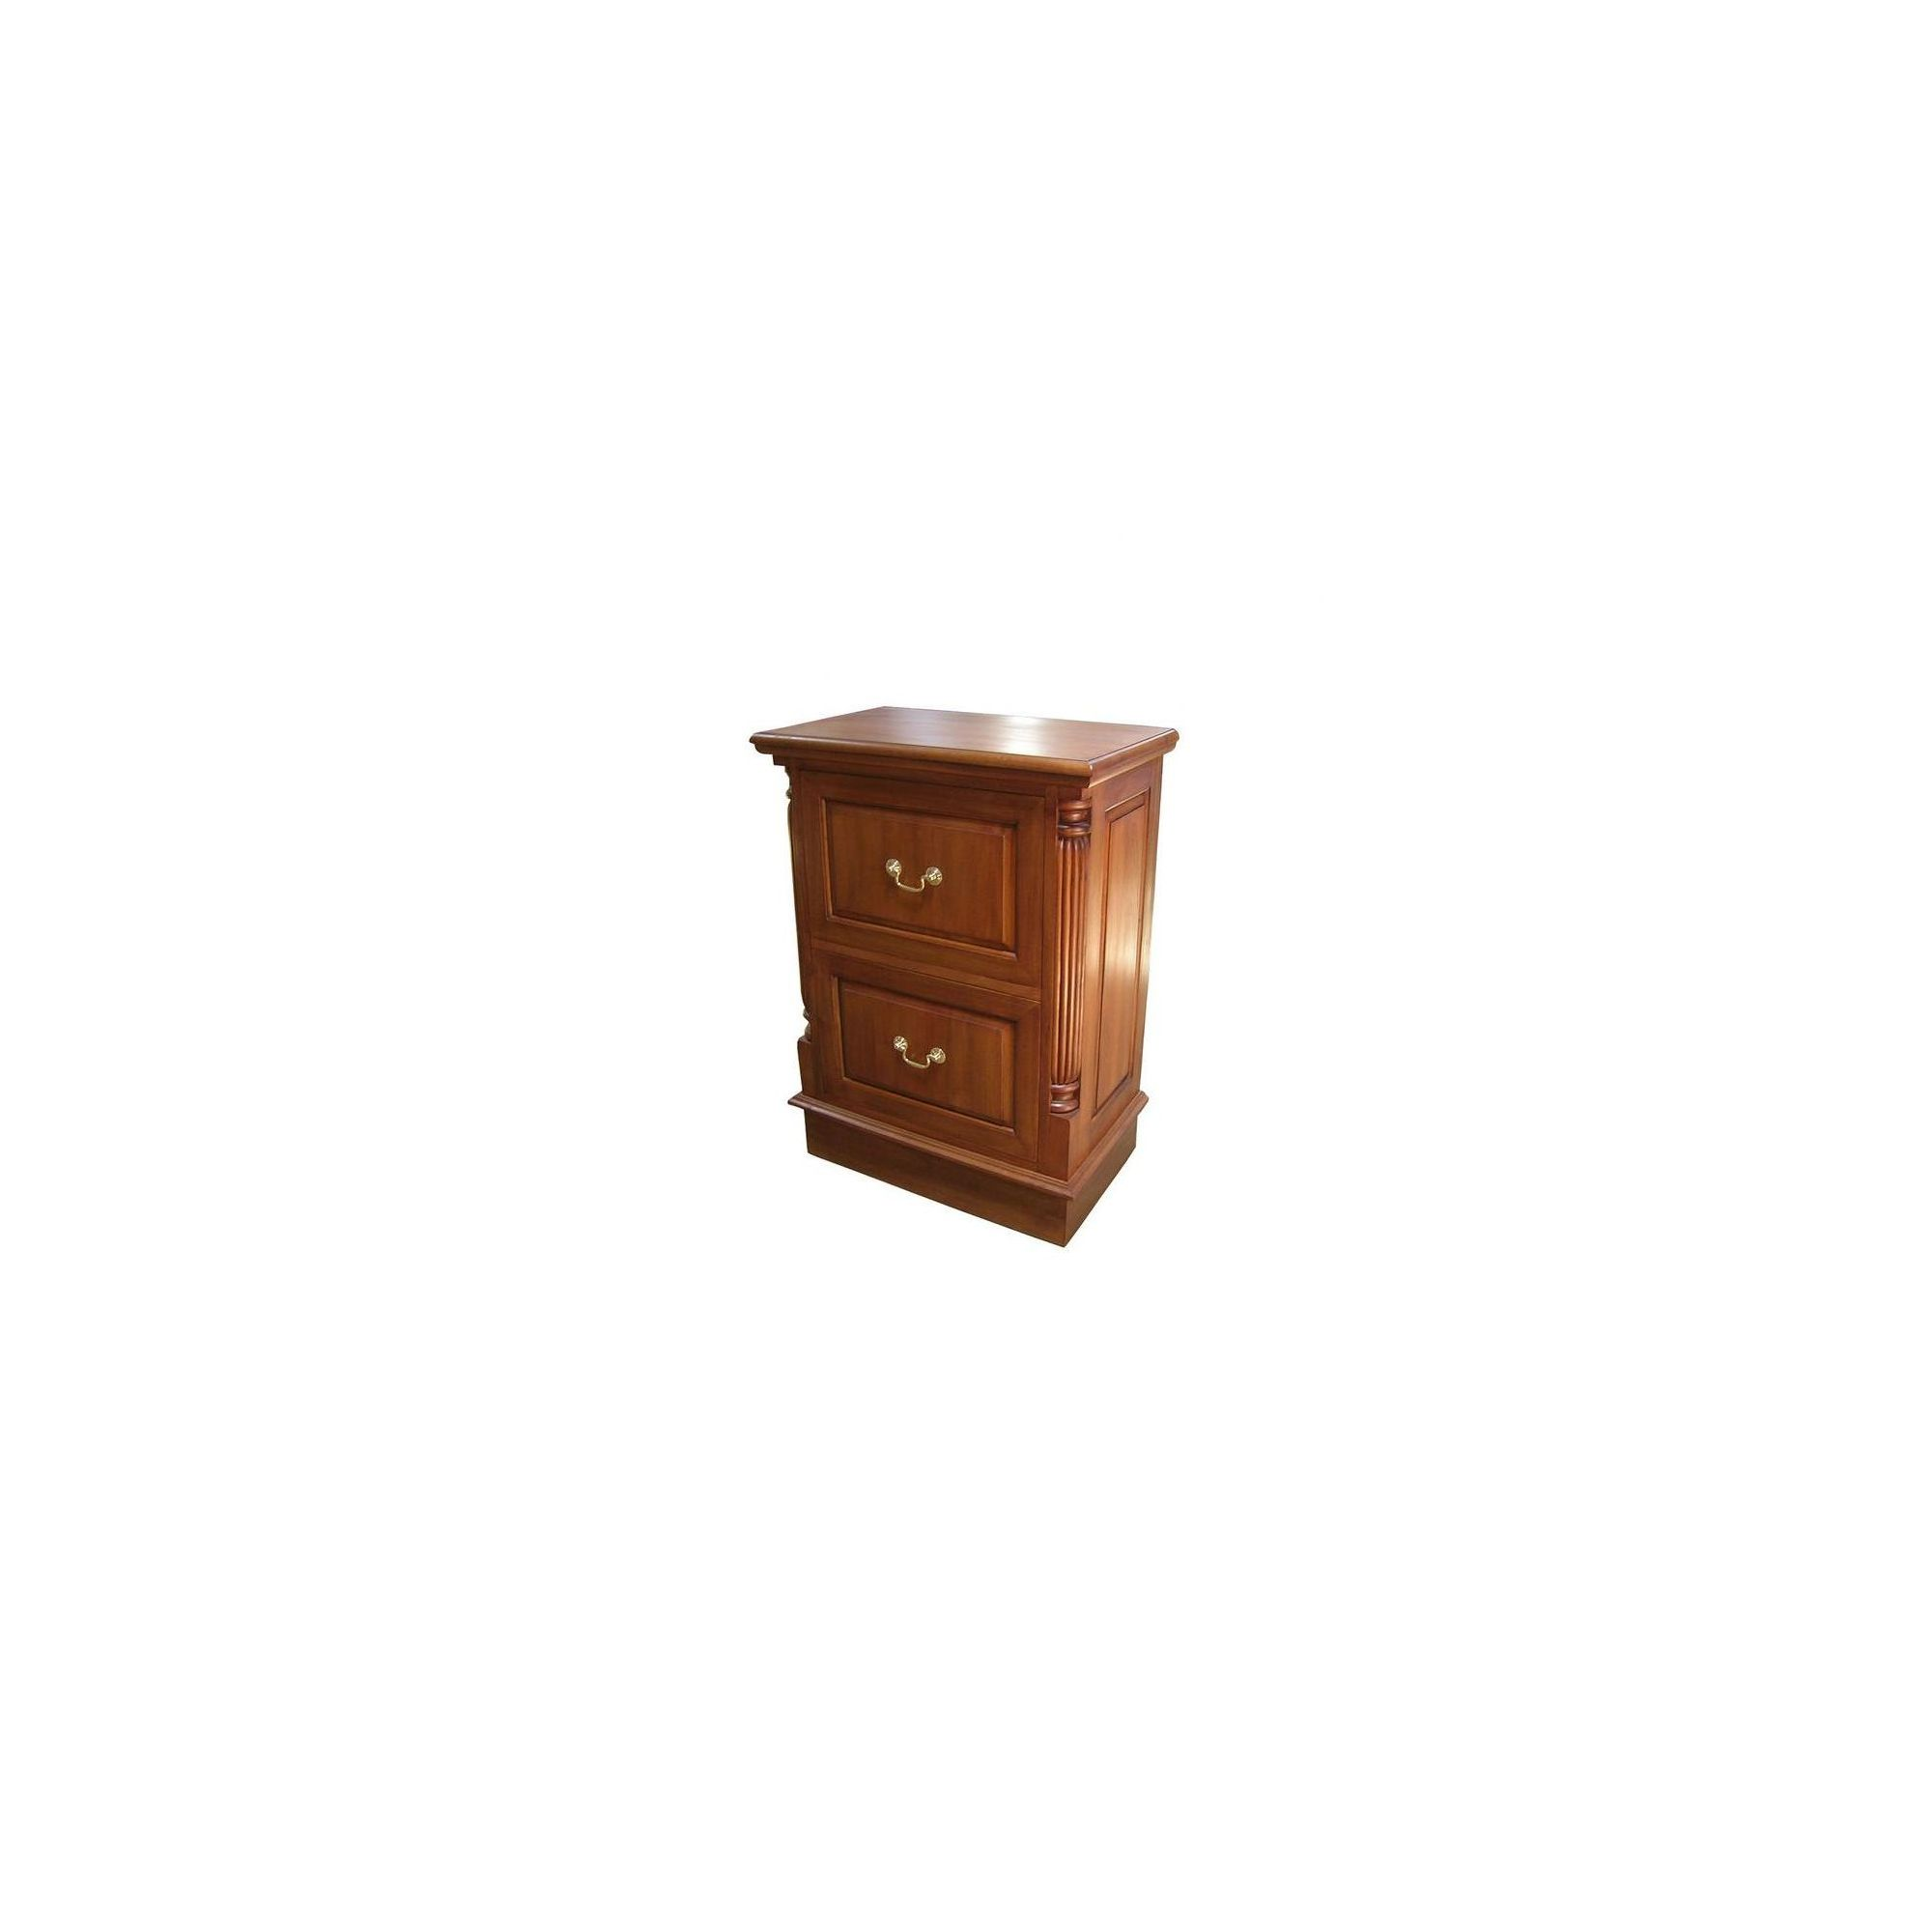 Lock stock and barrel Mahogany 2 Drawer Filing Cabinet with Brass Handles in Mahogany at Tescos Direct